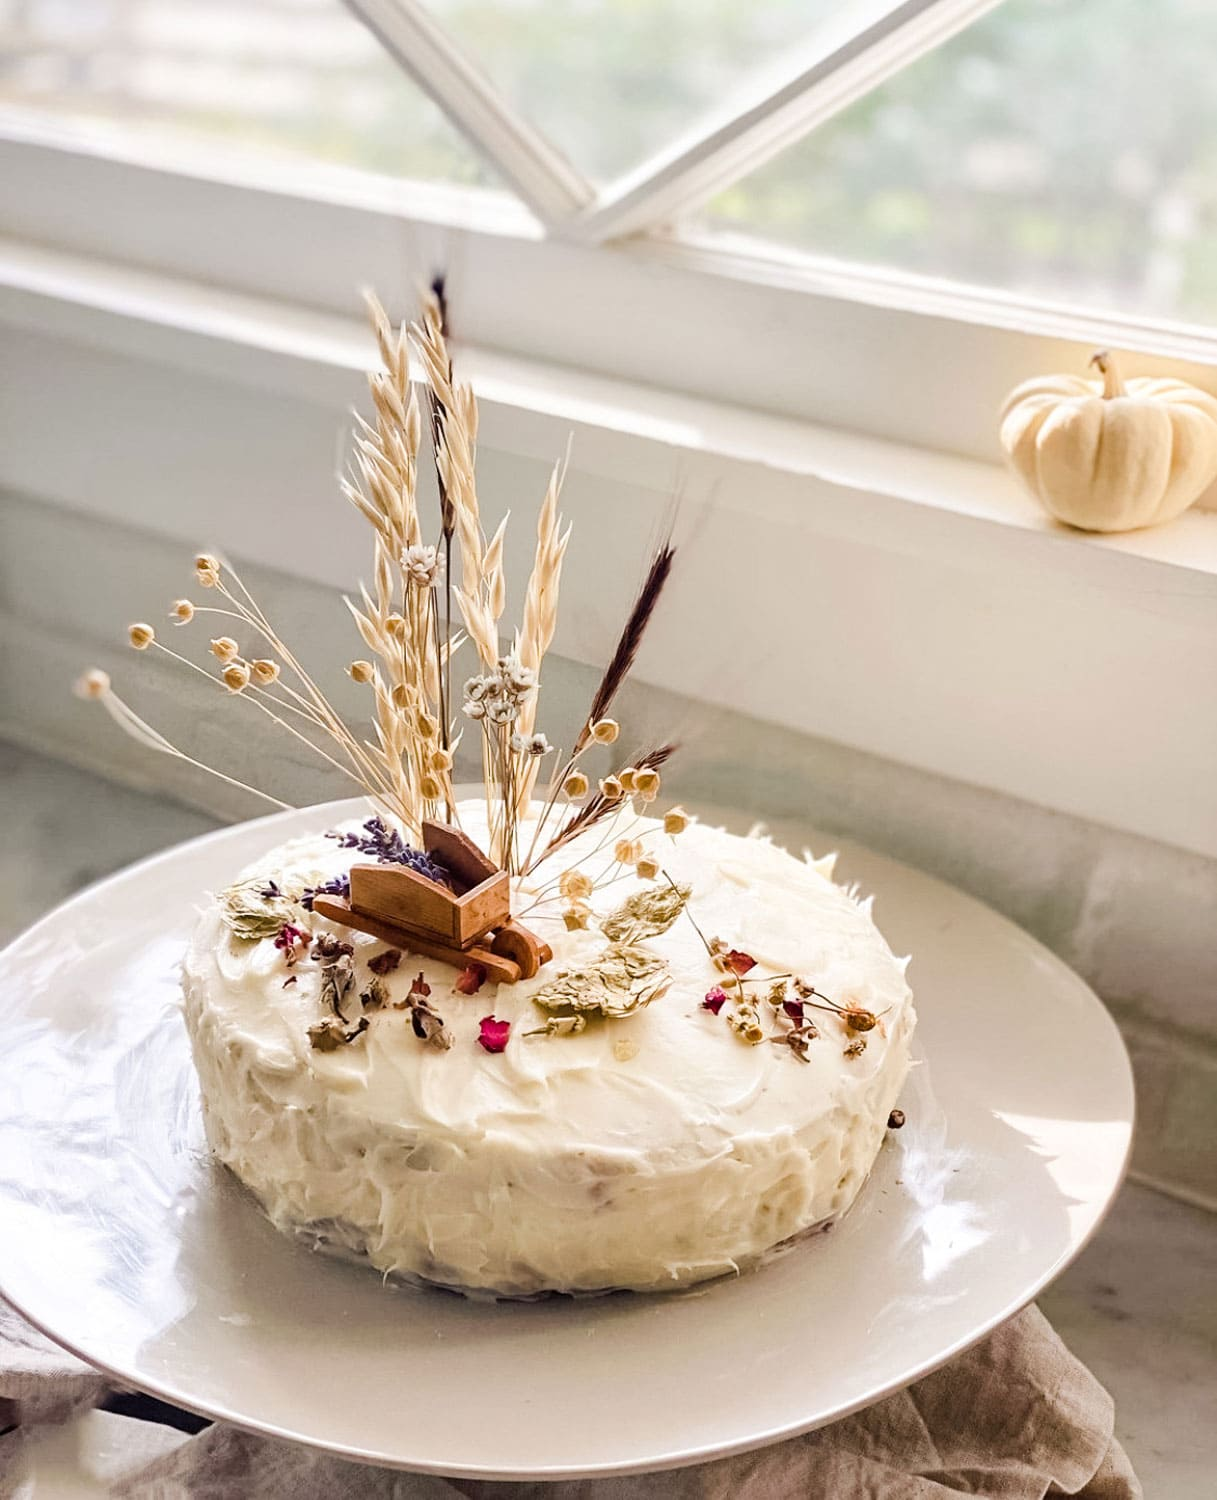 Decorated Cake on cake plate in front of old window